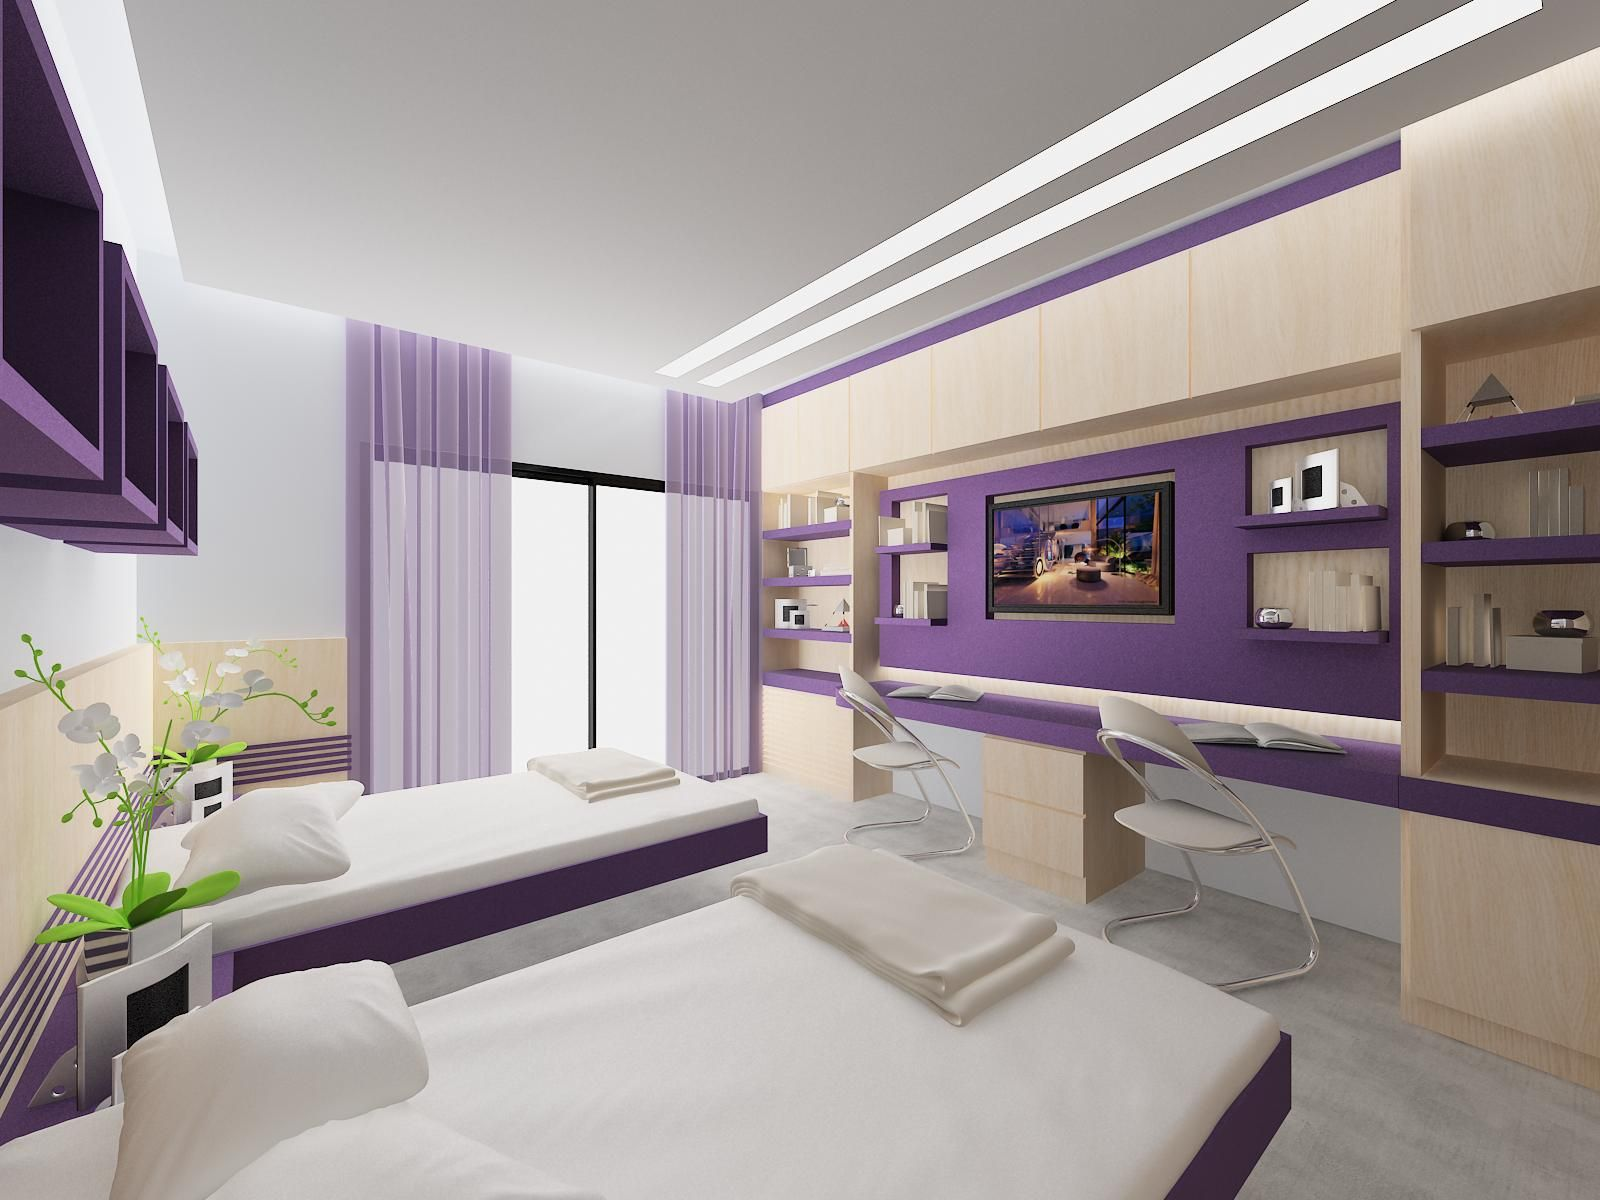 Bedroom simple ceiling lighting - Wonderful False Ceiling Lights For Teen Girls Bedroom Designs